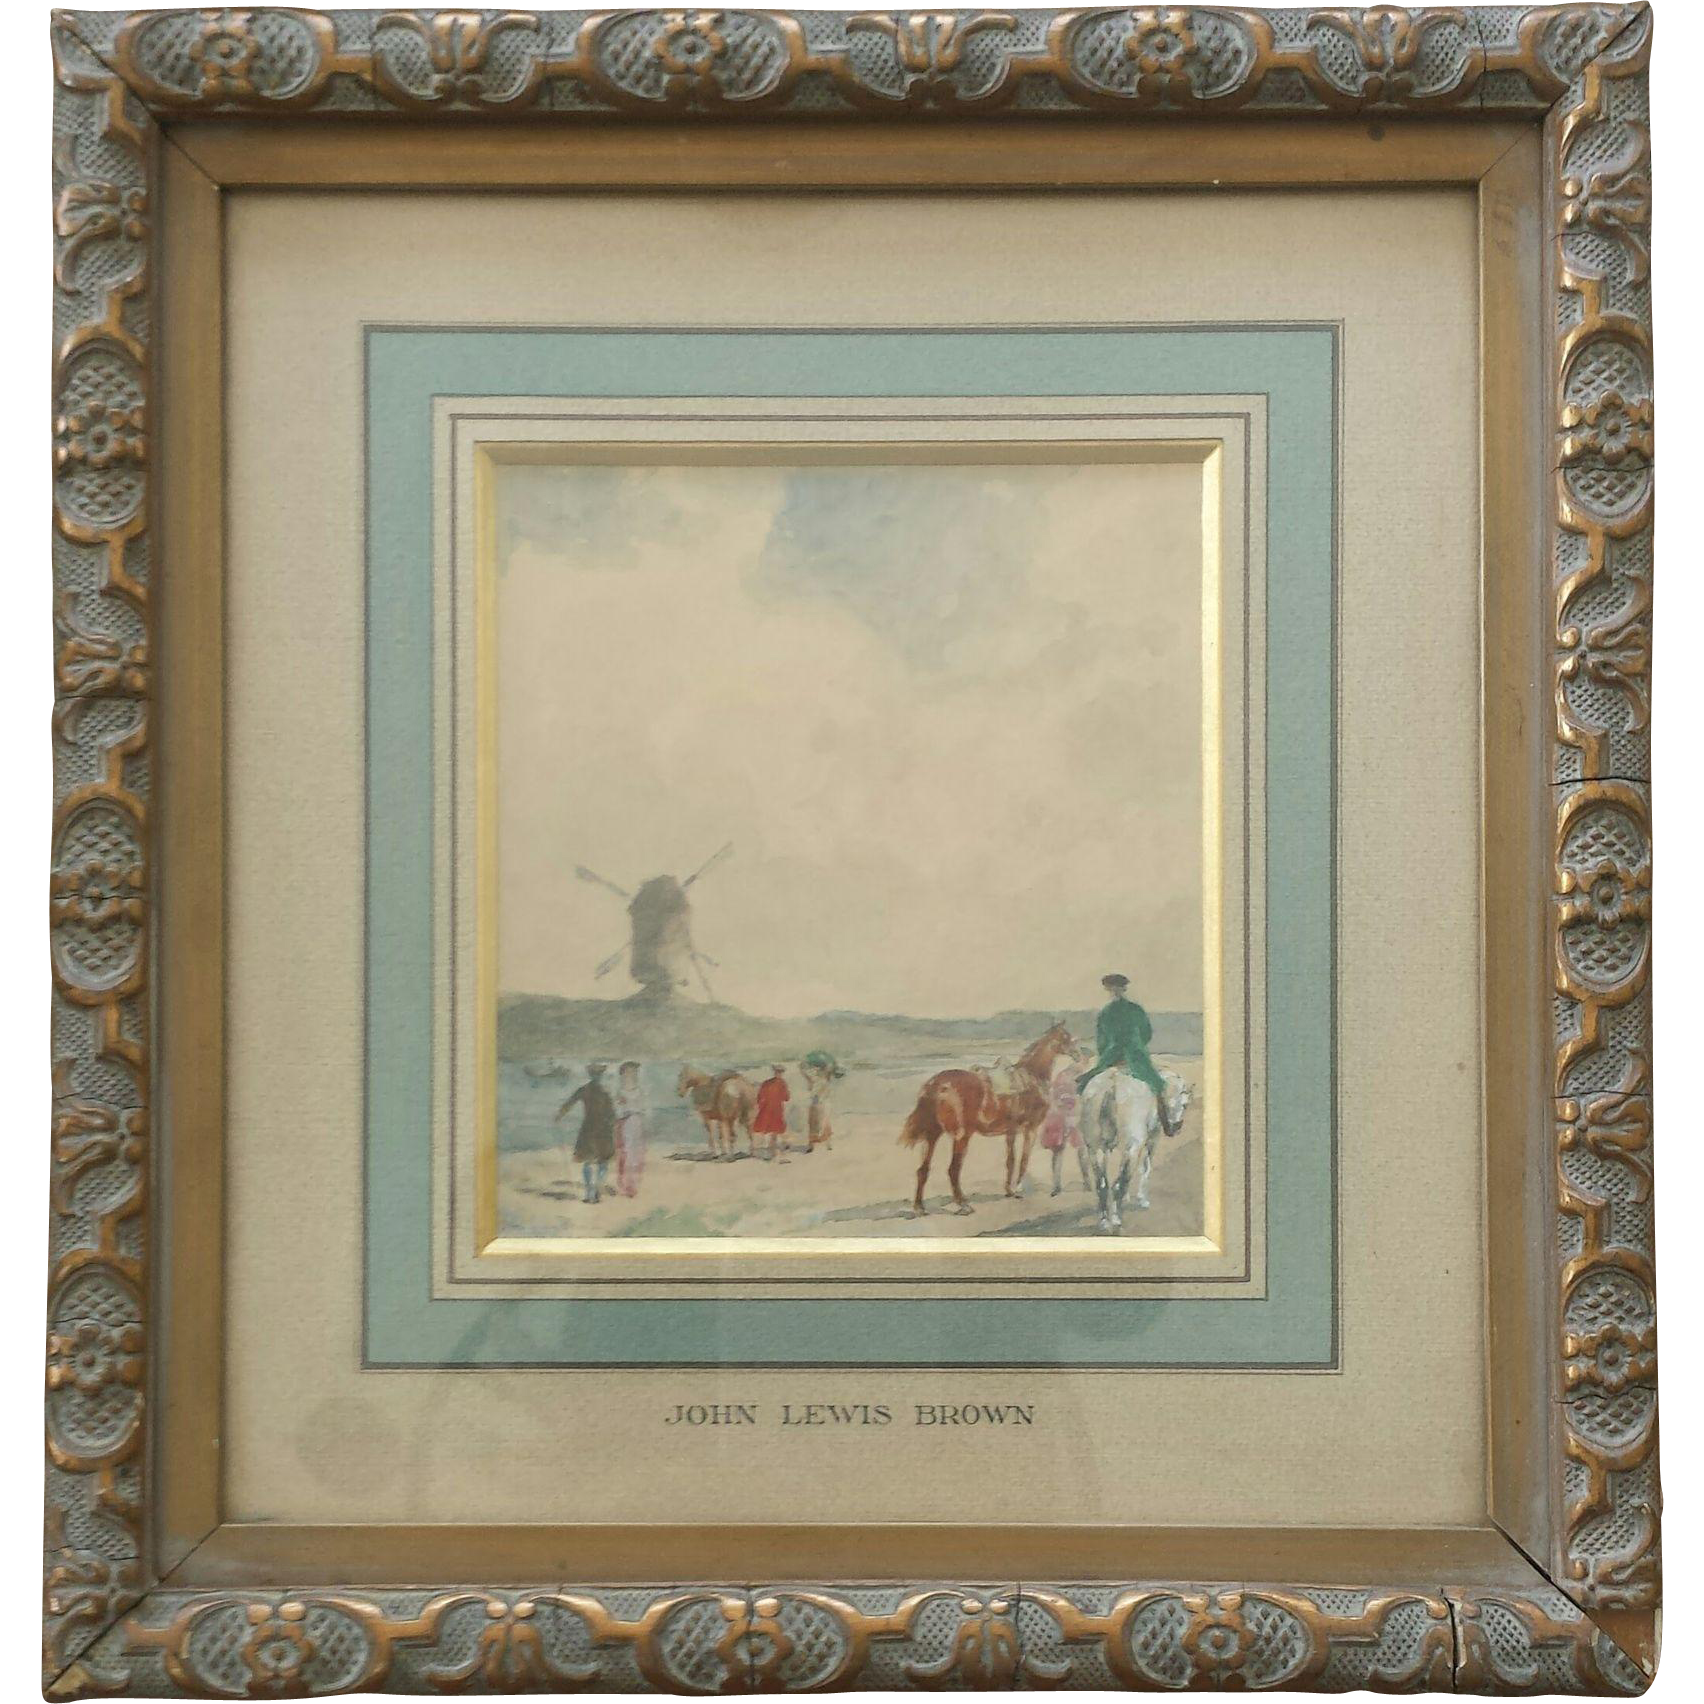 Fine Framed 19th Century French Watercolor Painting by John Lewis Brown (1829-1890)